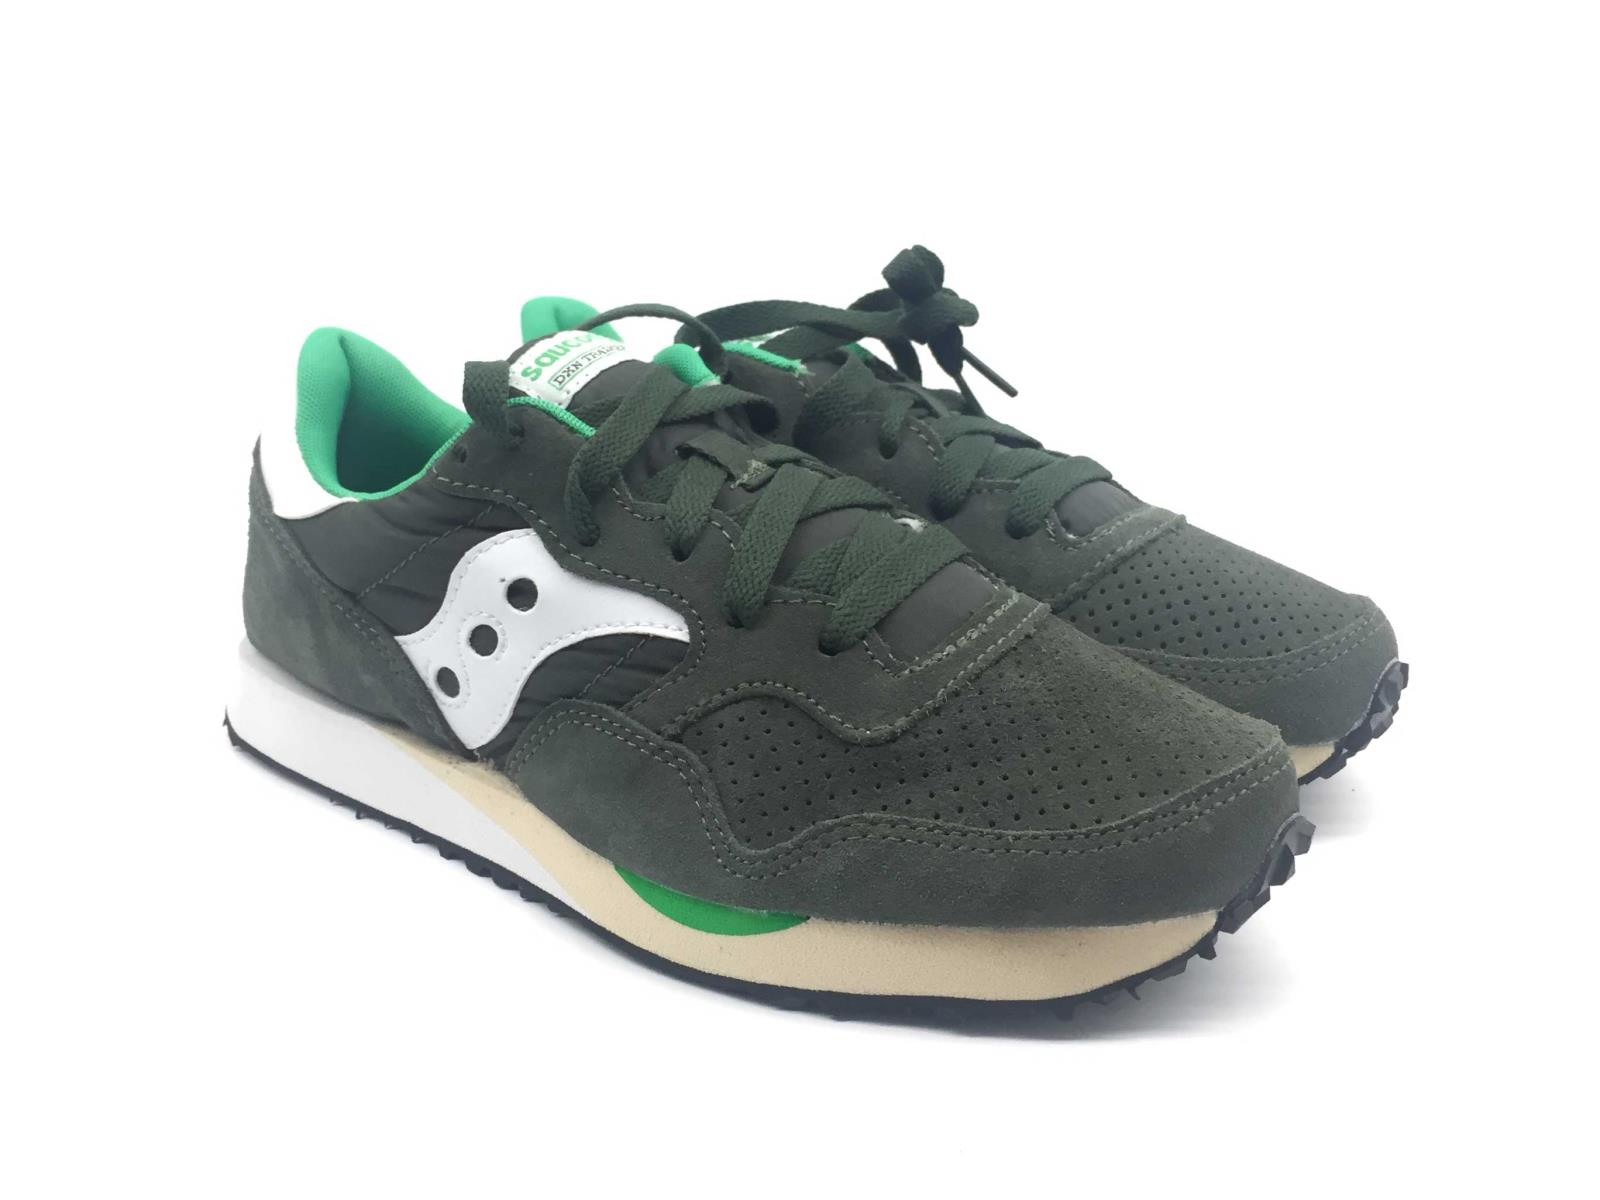 Saucony Dxn Trainer